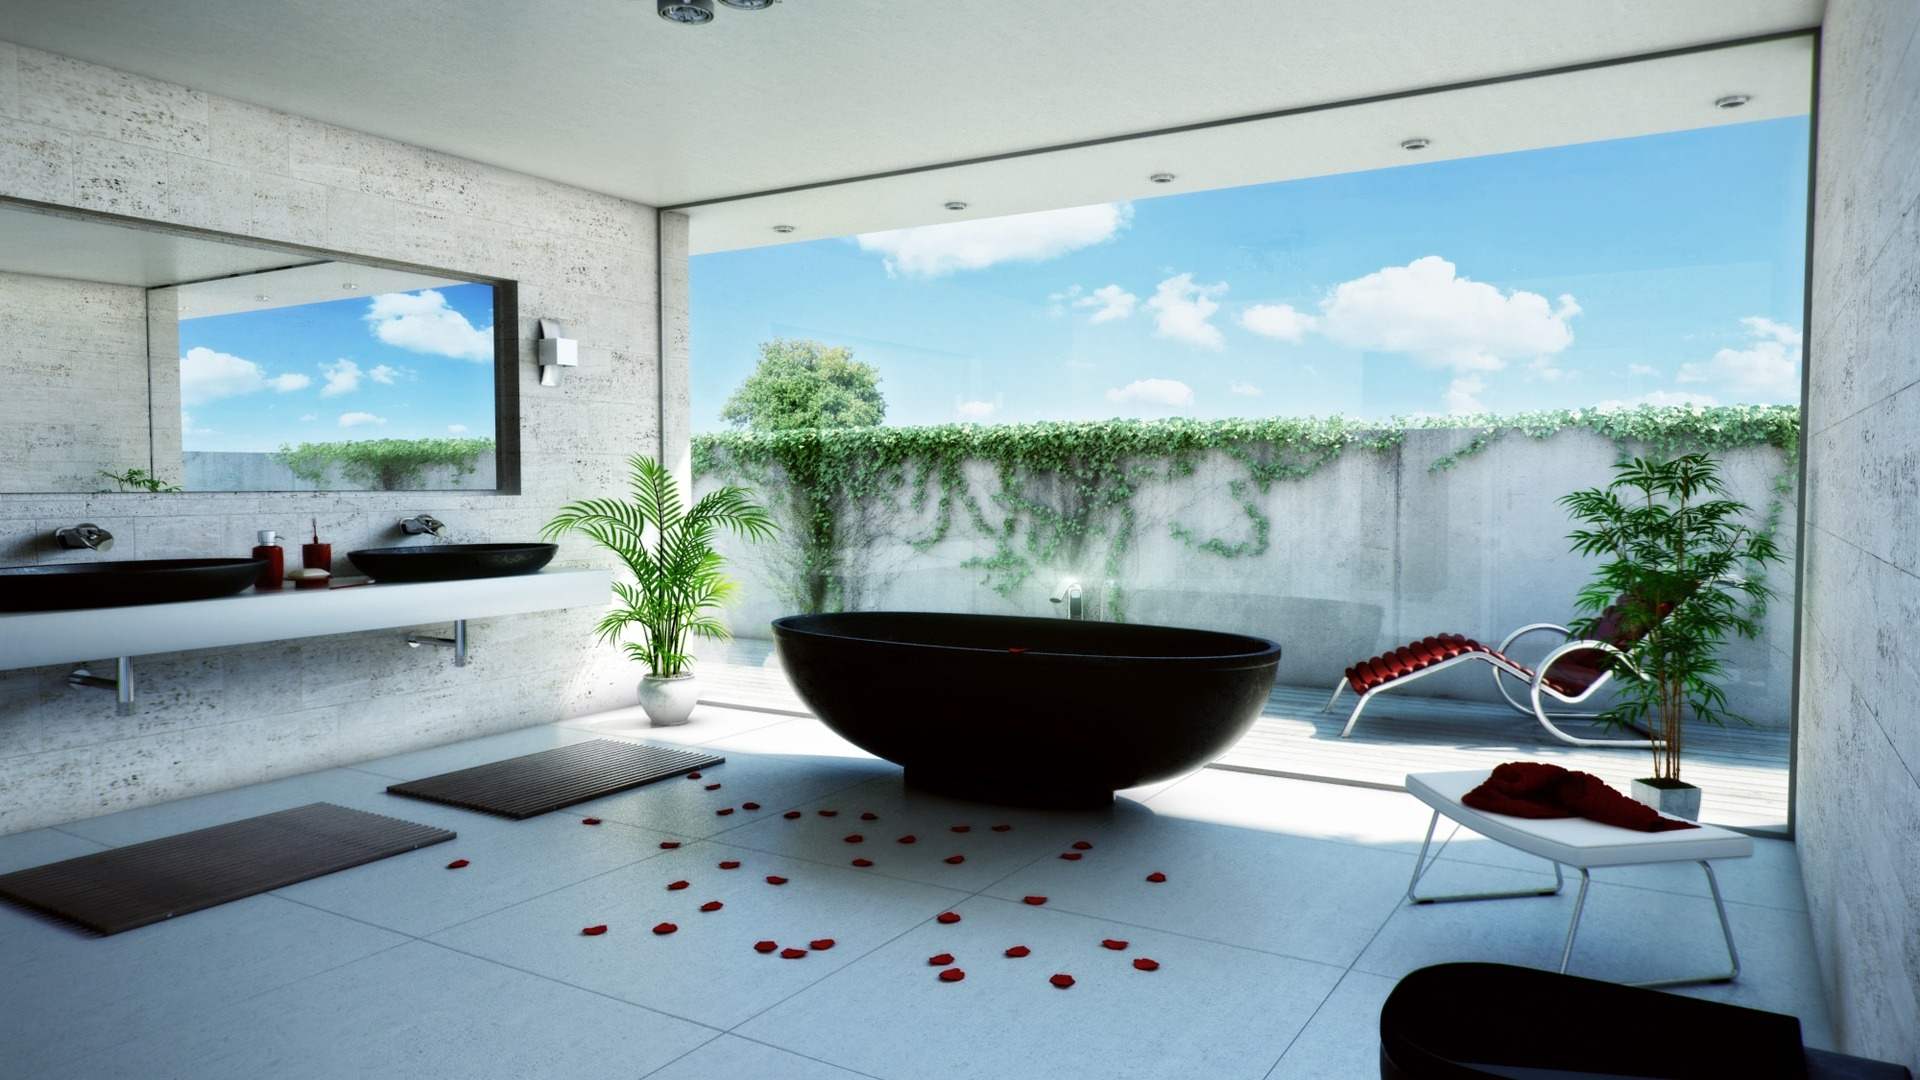 New Bathroom Wallpaper ideas